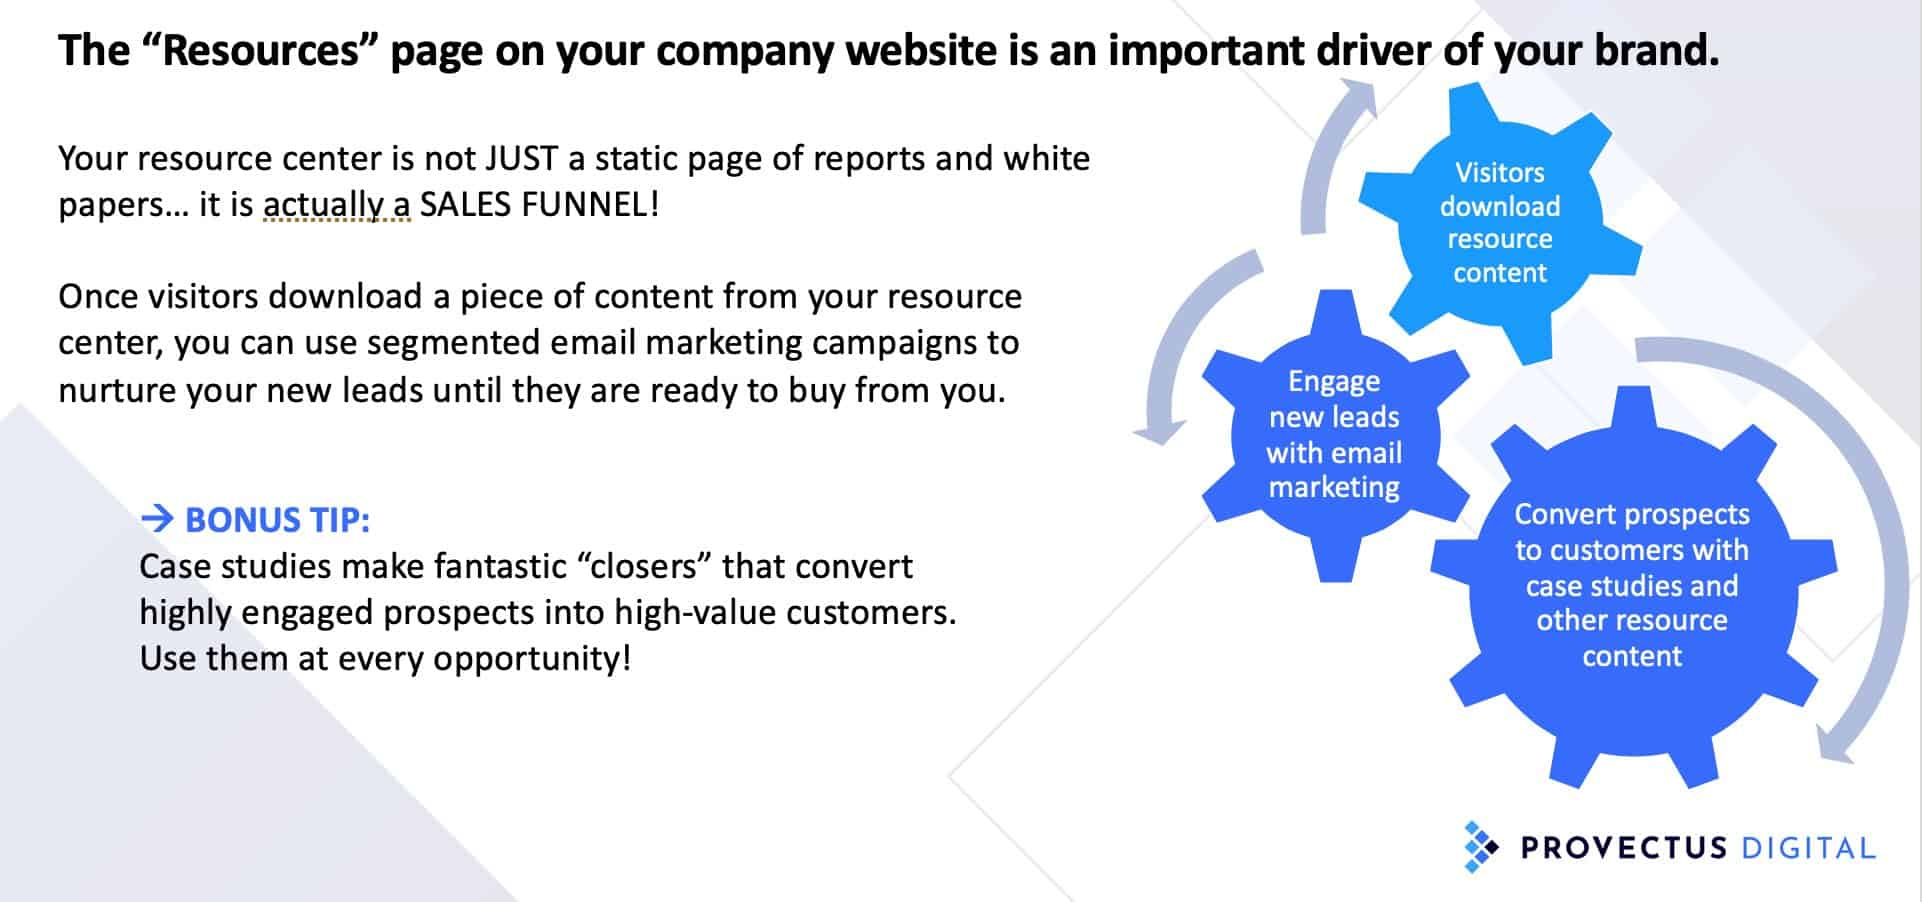 resource center generate leads